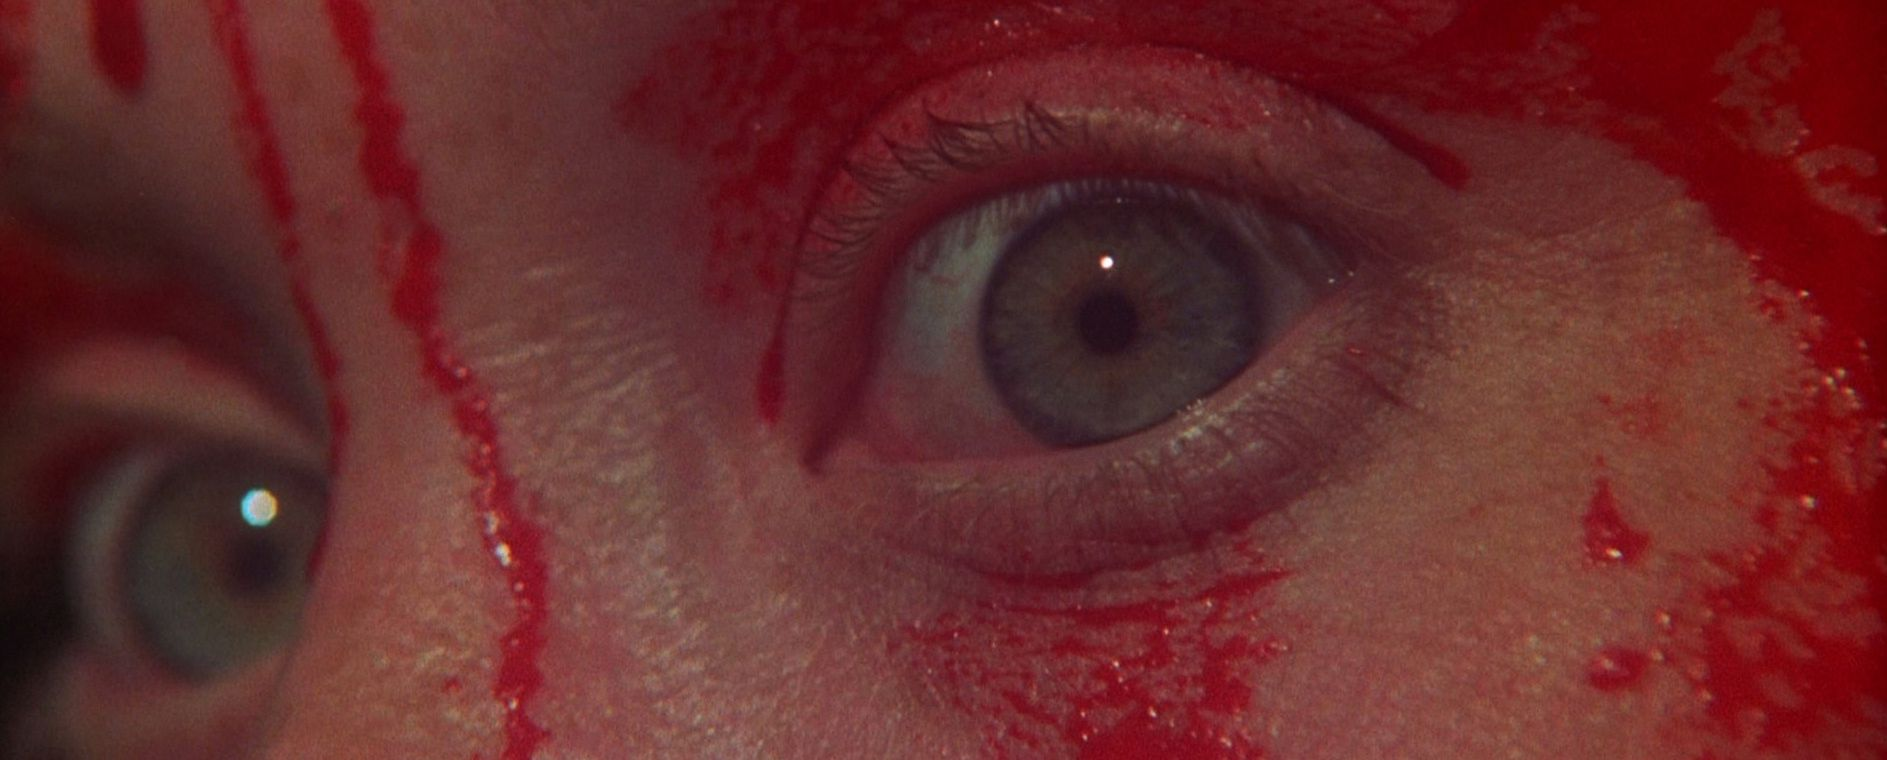 An image from Carrie